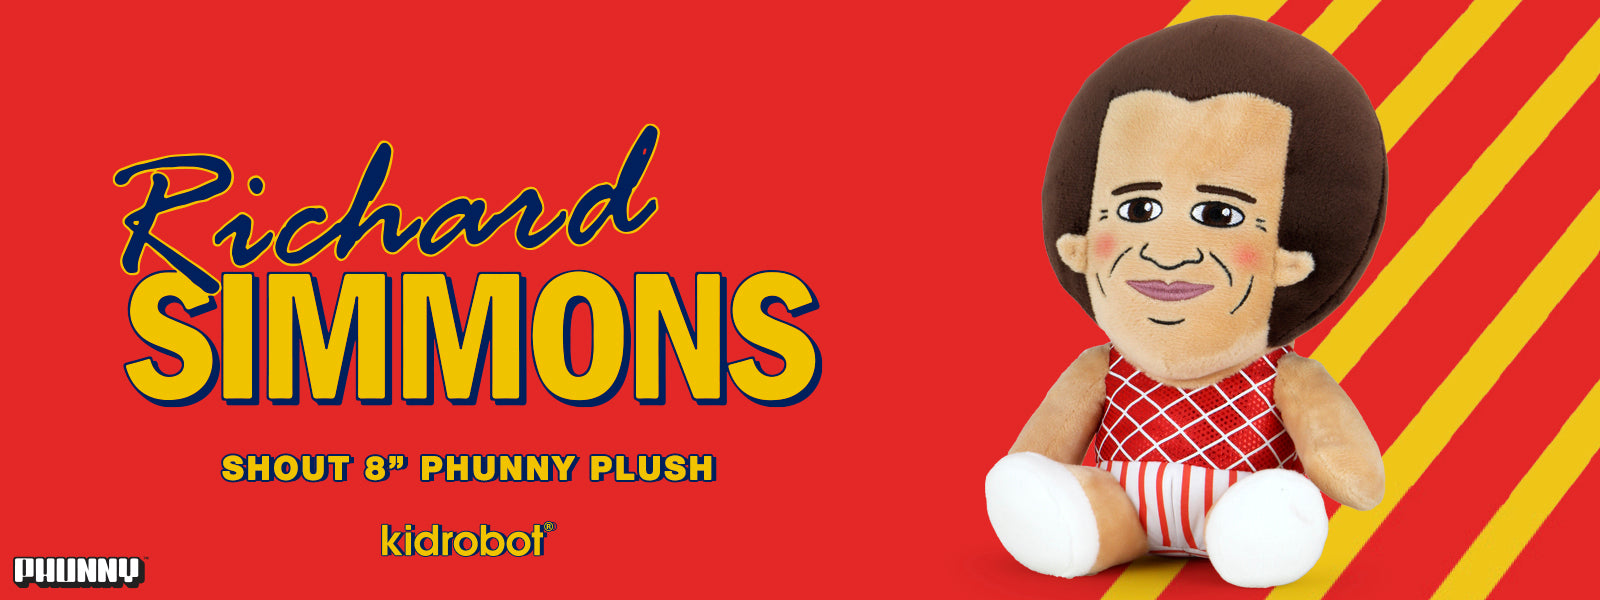 Richard Simmons Shout Phunny Plush from Kidrobot